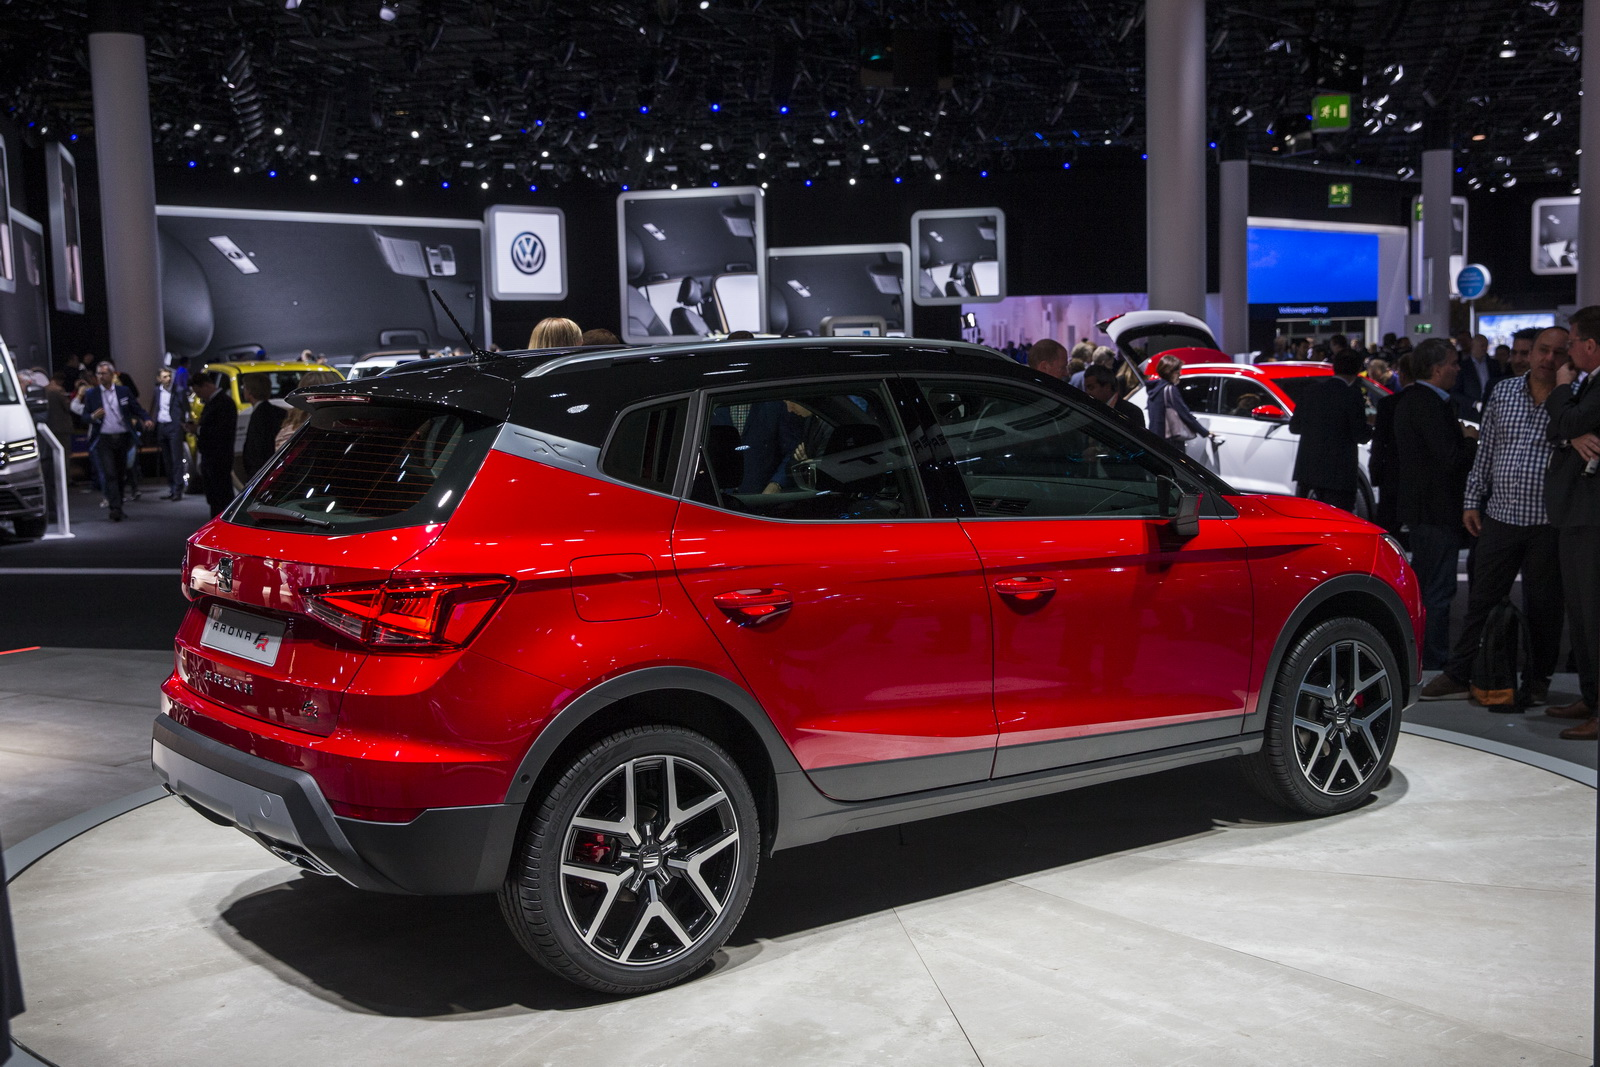 New Seat Arona Priced From 163 16 555 Otr In The Uk